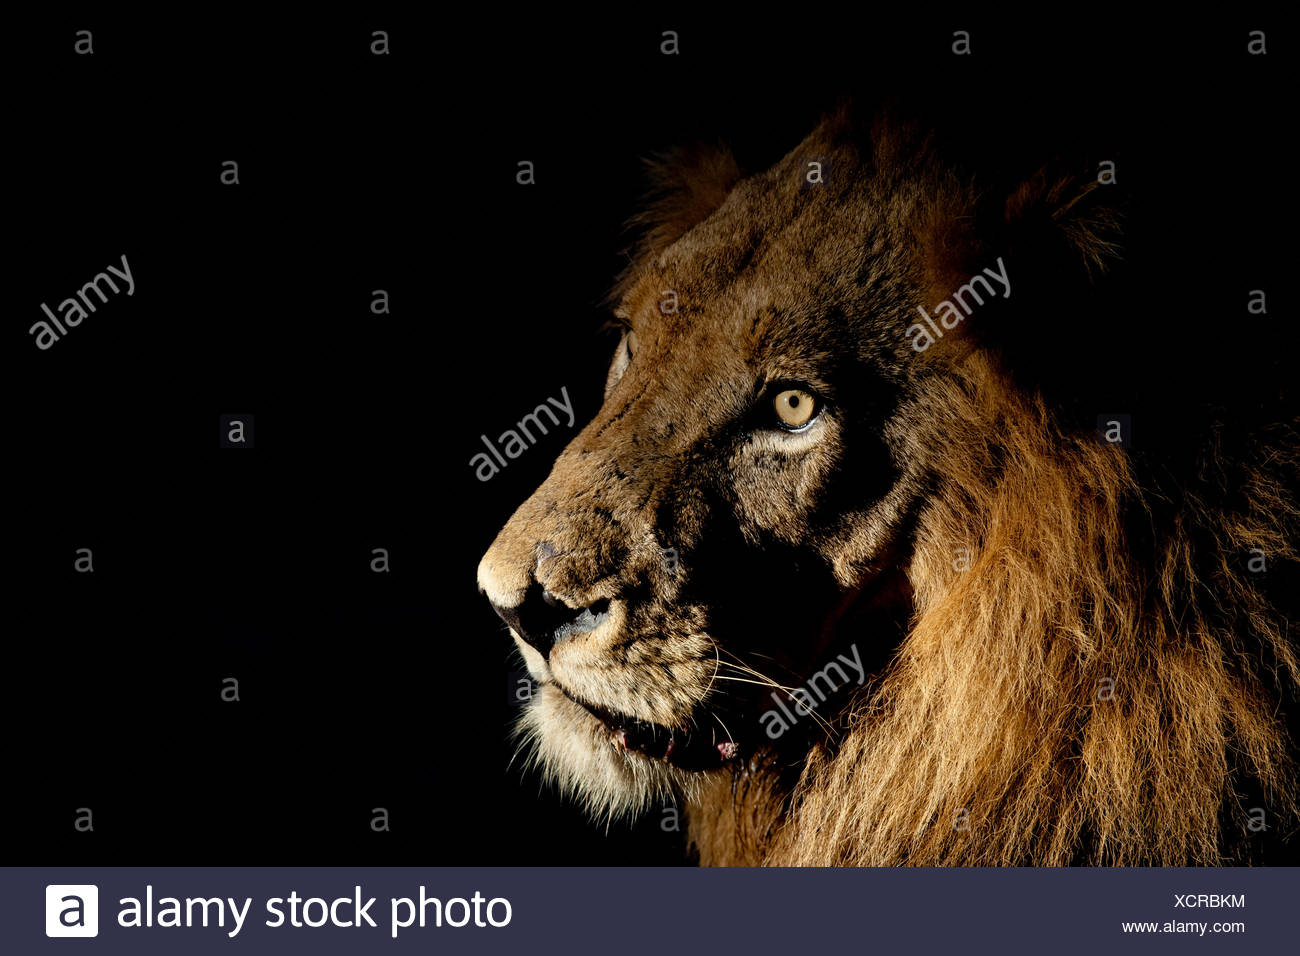 Lion (Panthera leo) male with scars photographed with side-lit spot light at night. Greater Kruger National Park, South Africa, Stock Photo